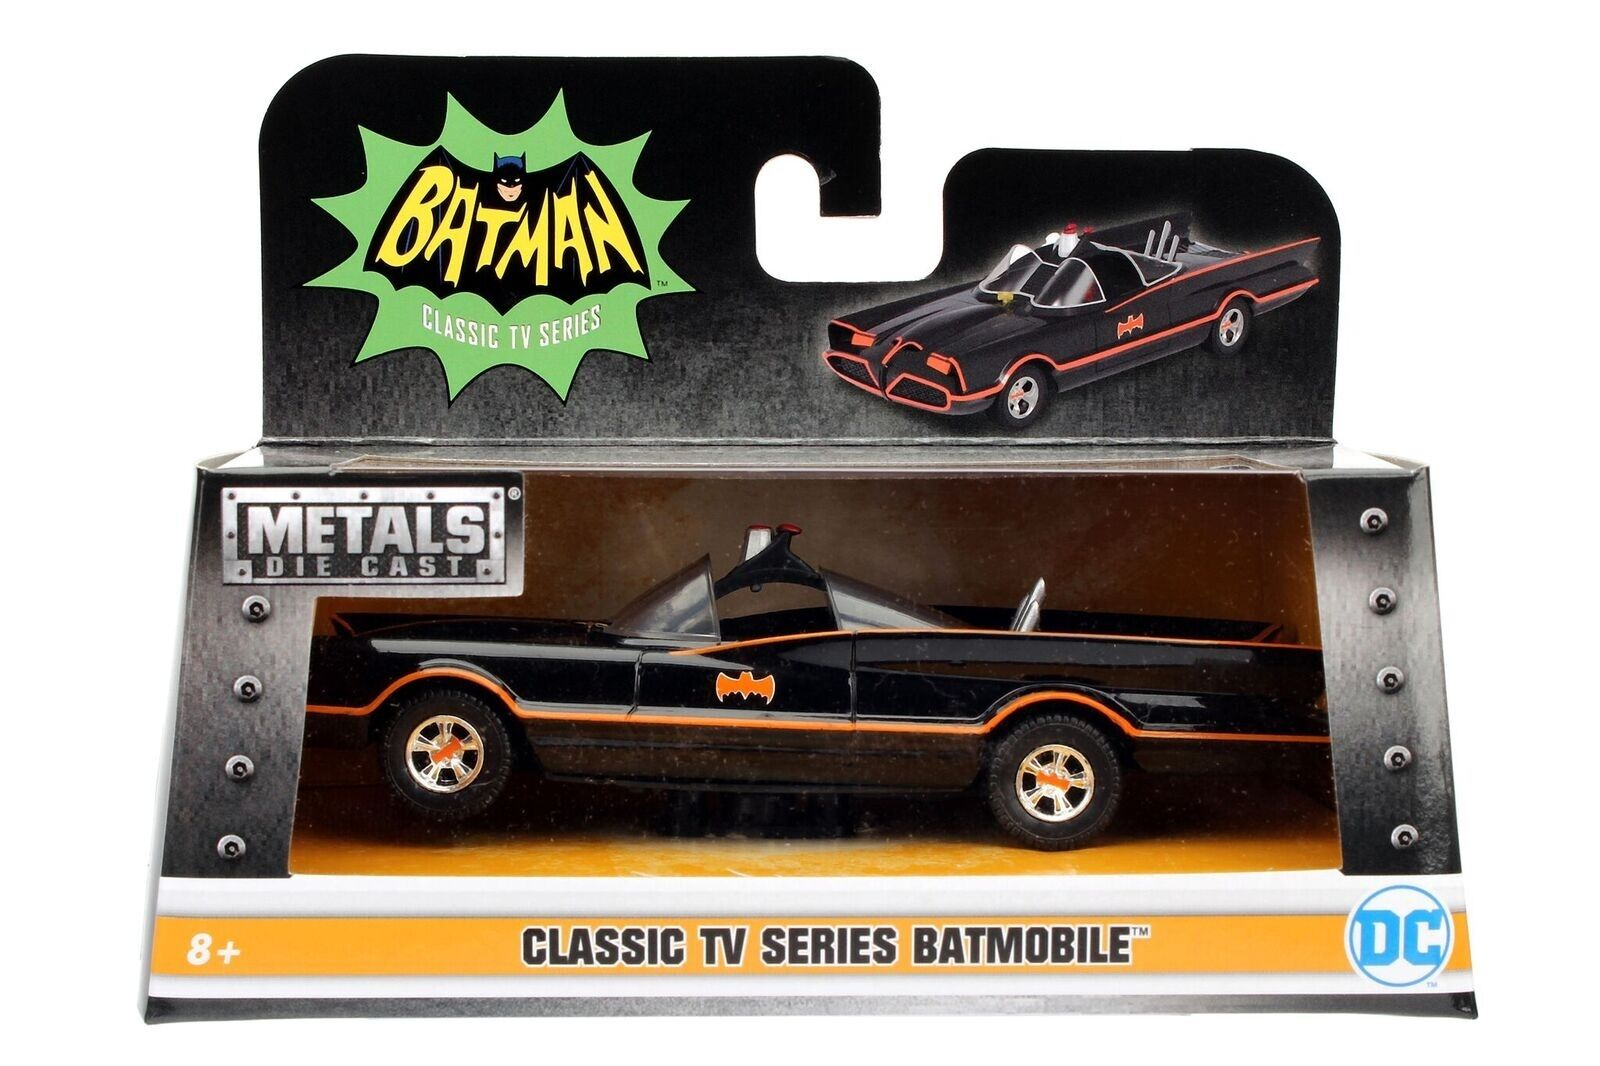 98225 Jada 1/32 1966 Batman Batmobile From The Classic TV Show NEW IN BOX!